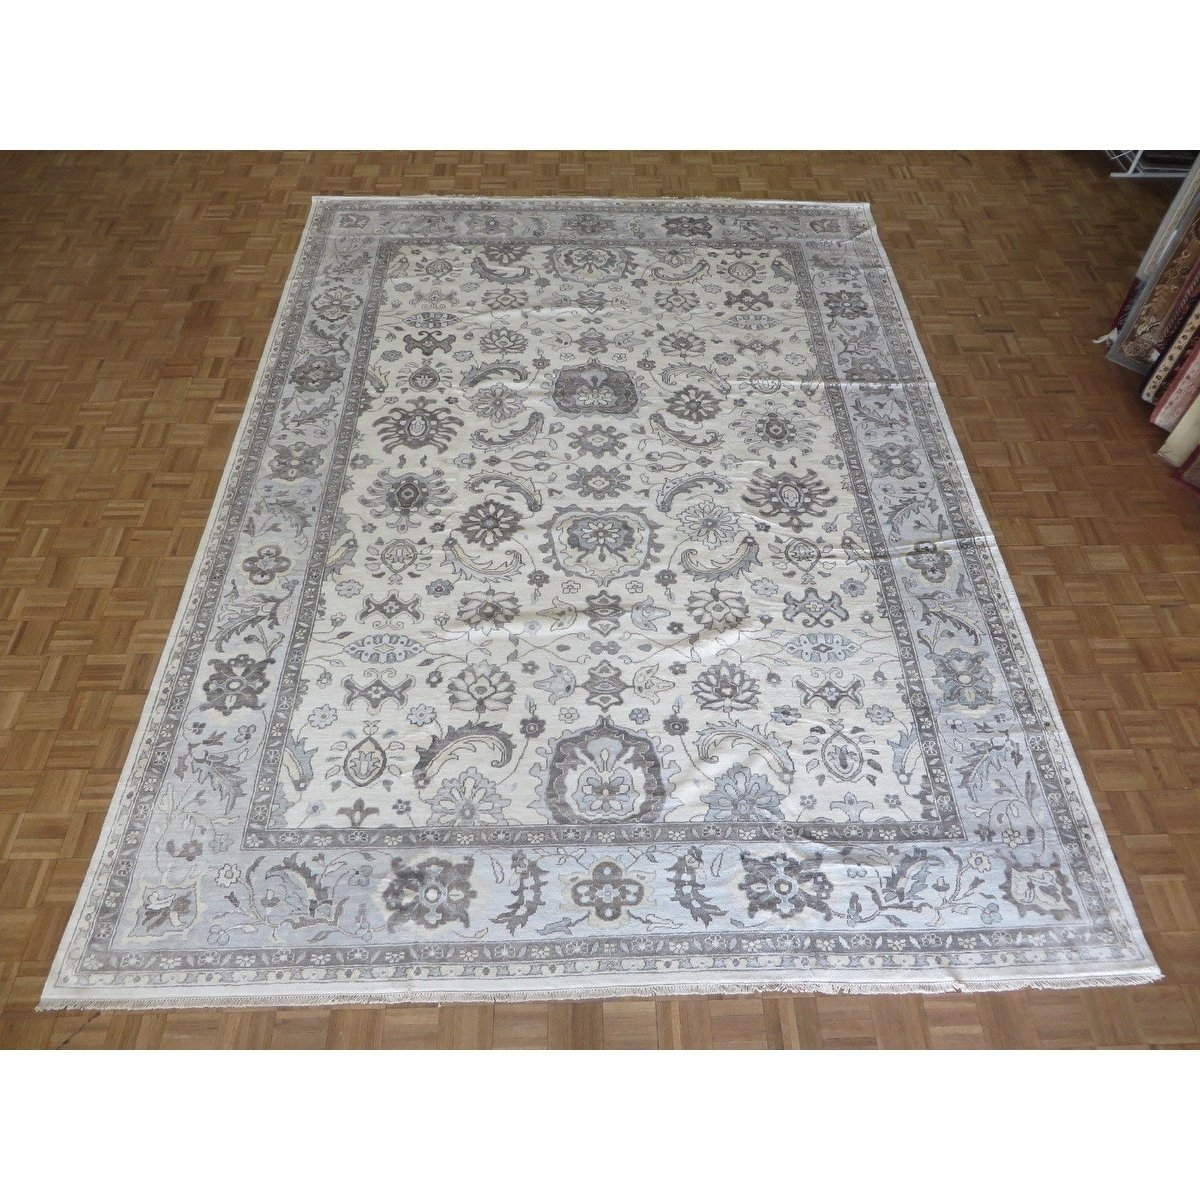 Hand Knotted Ivory Turkish Bamboo Silk Oushak With Bamboo Silk Oriental Rug 10 3 X 14 1 10 3 X 14 1 Viscose Silk Area Rugs Bamboo Silk Colorful Rugs